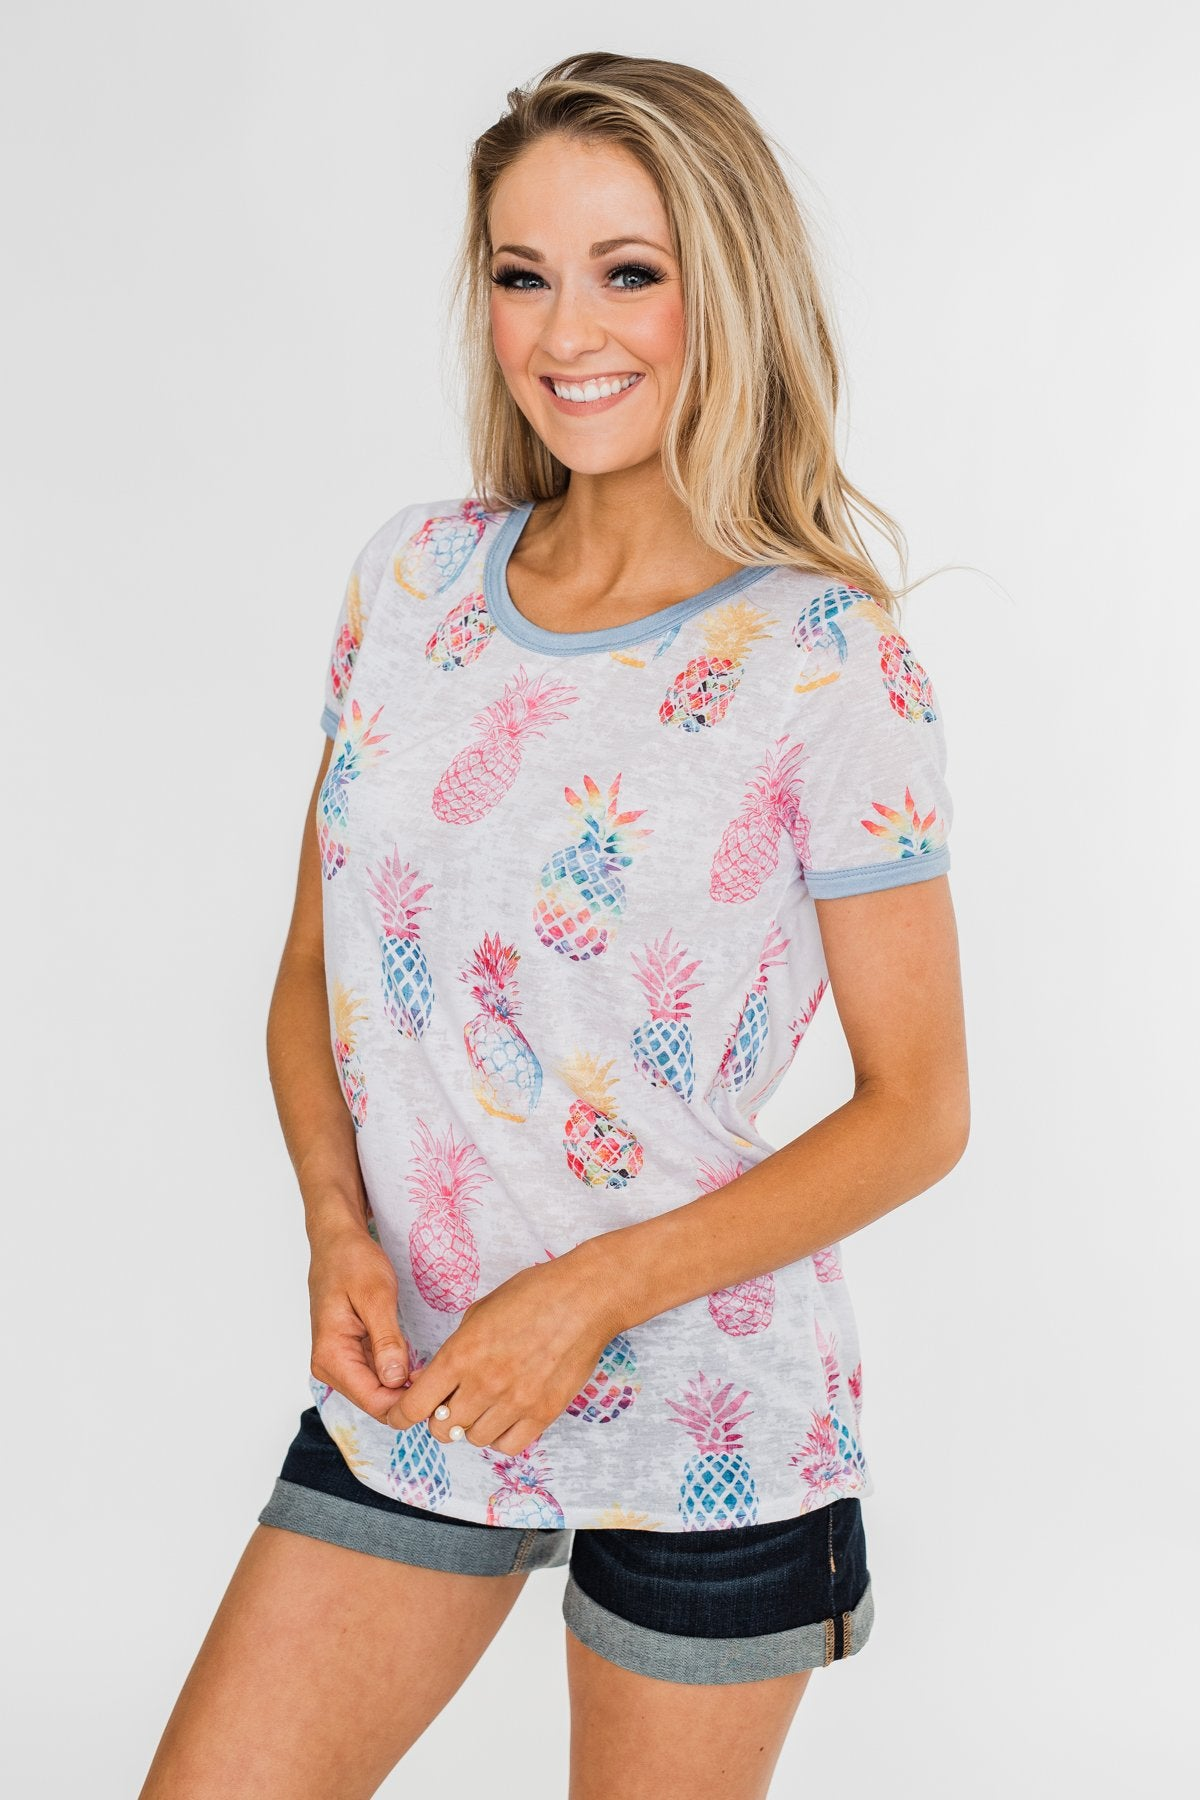 Stand Tall Pineapple Top- Blue